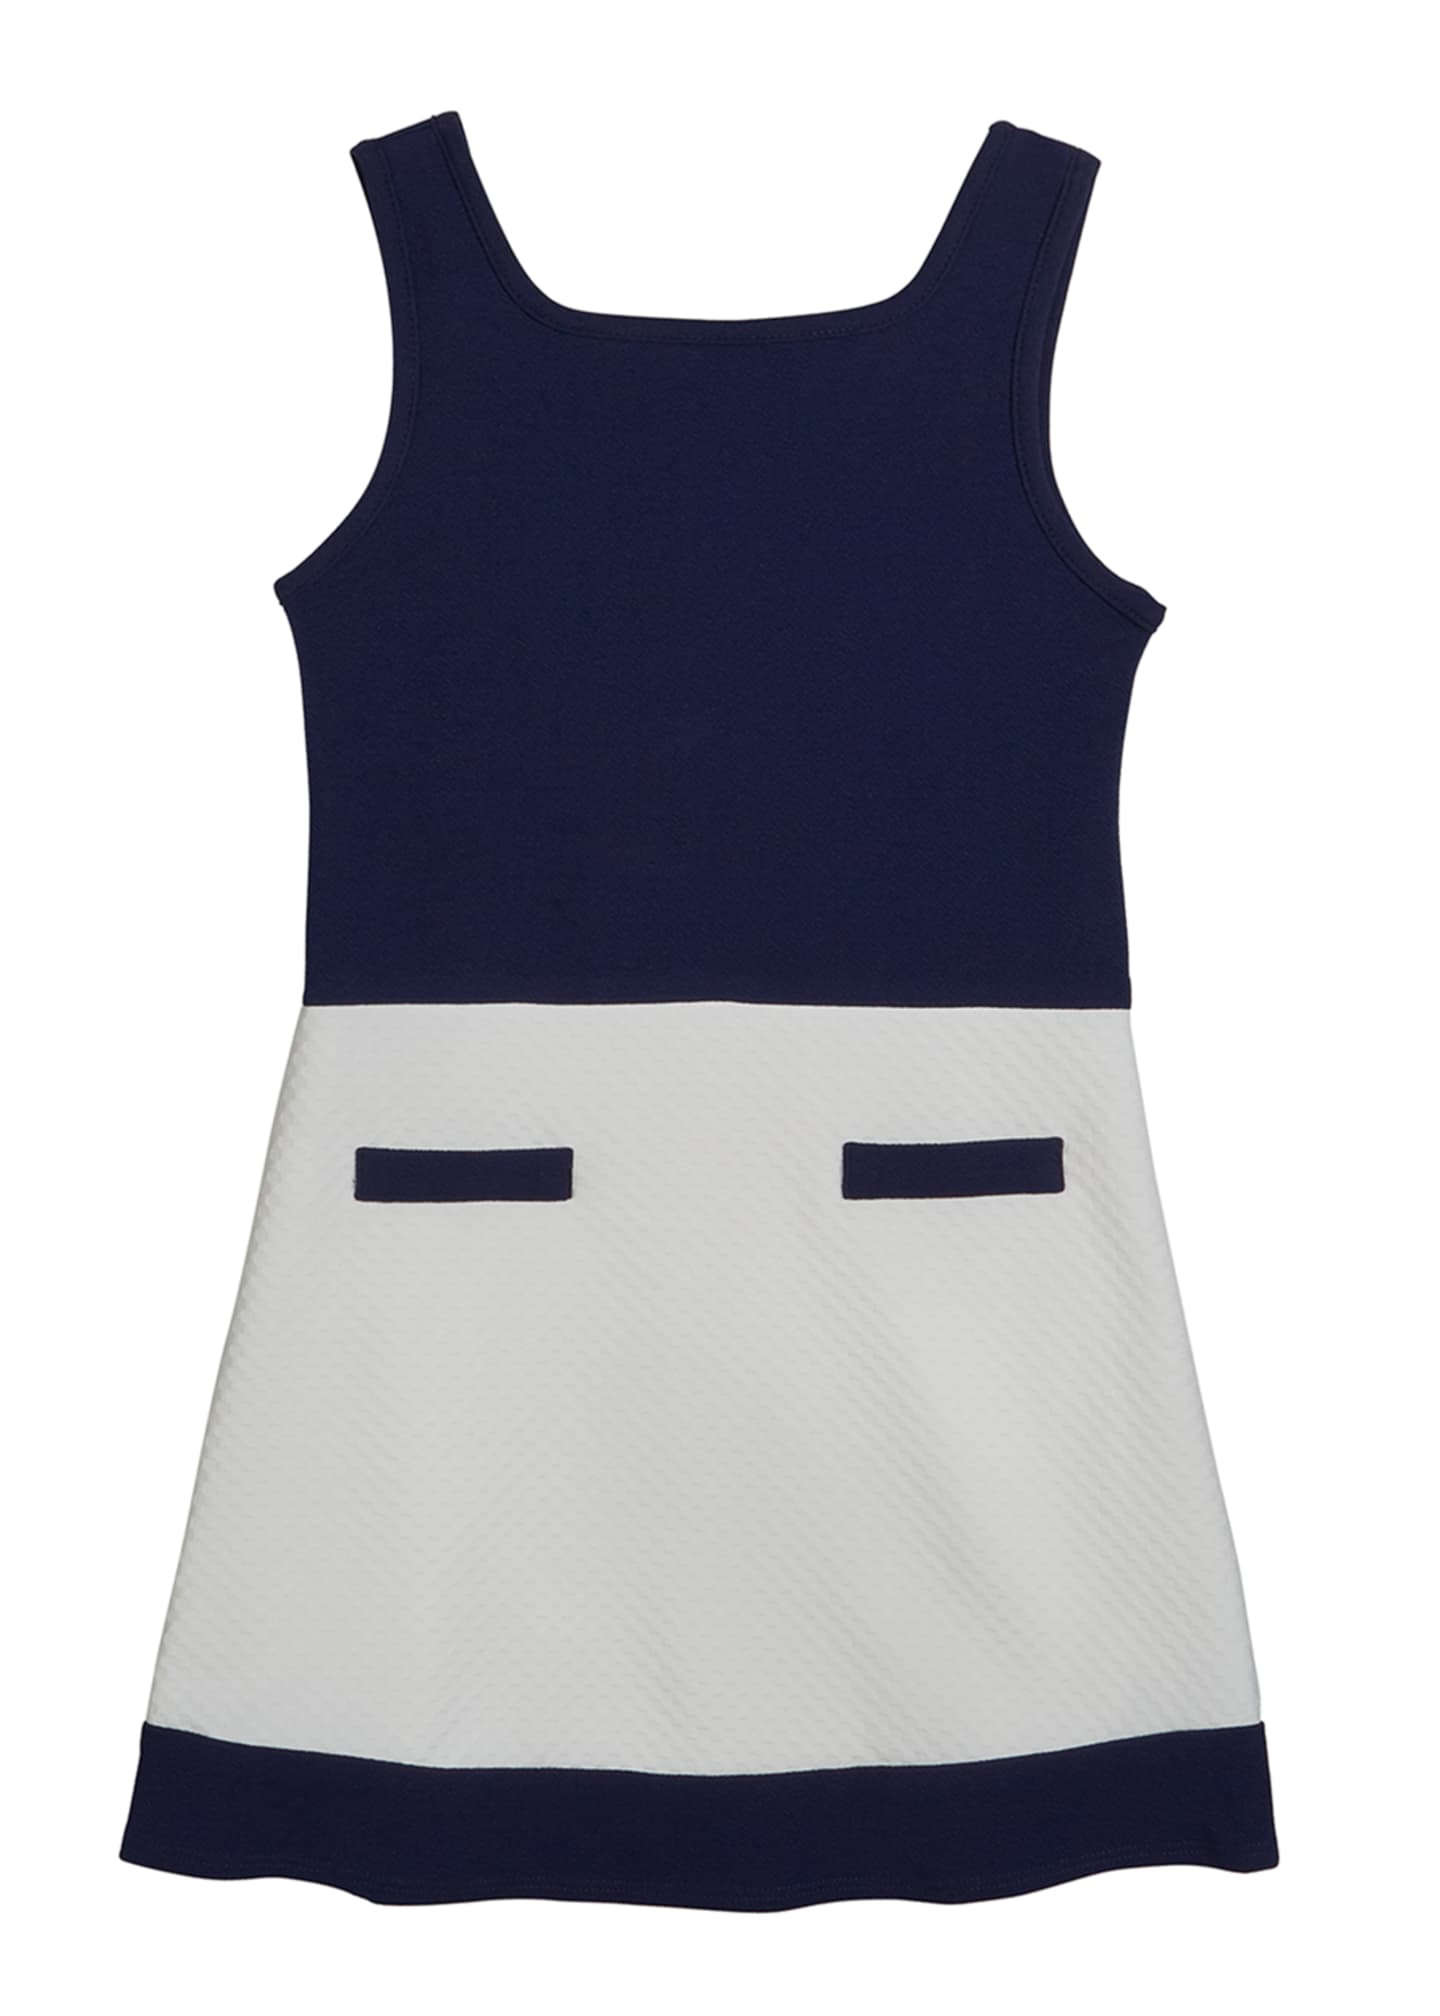 Sally Miller The Coco Colorblock Sleeveless Dress, Size